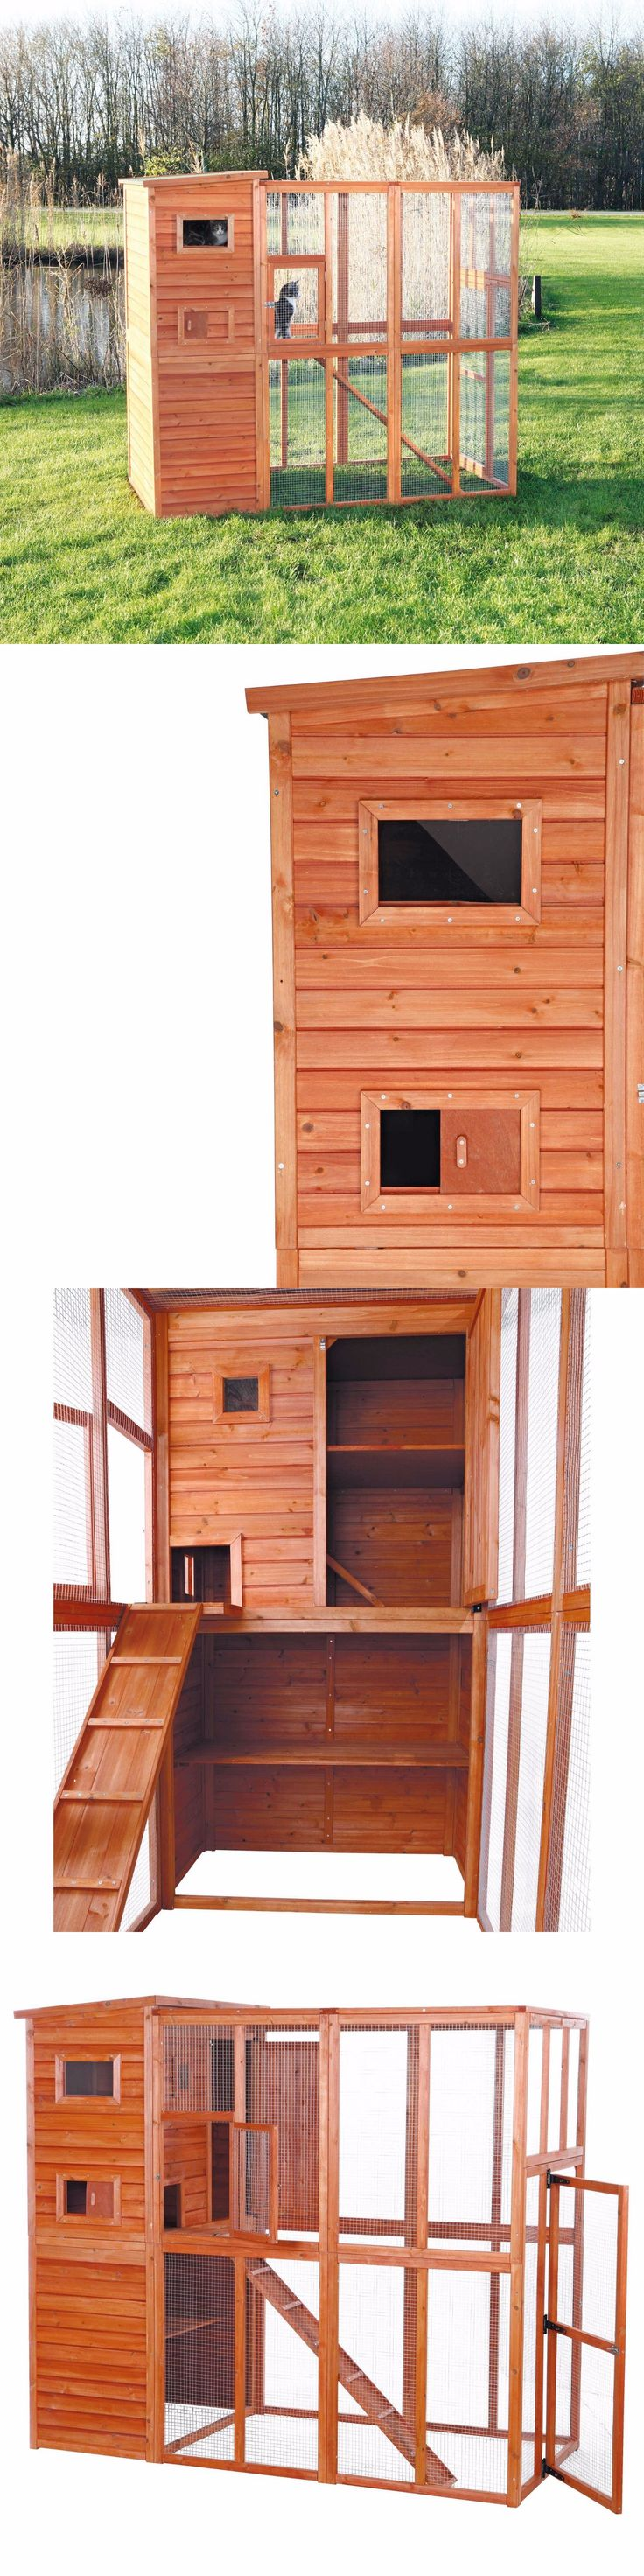 Carriers and Crates 116362: Outdoor Cat Run Enclosure Wooden Fun Small Animal Shelter Pet Tunnel House -> BUY IT NOW ONLY: $479.01 on eBay!